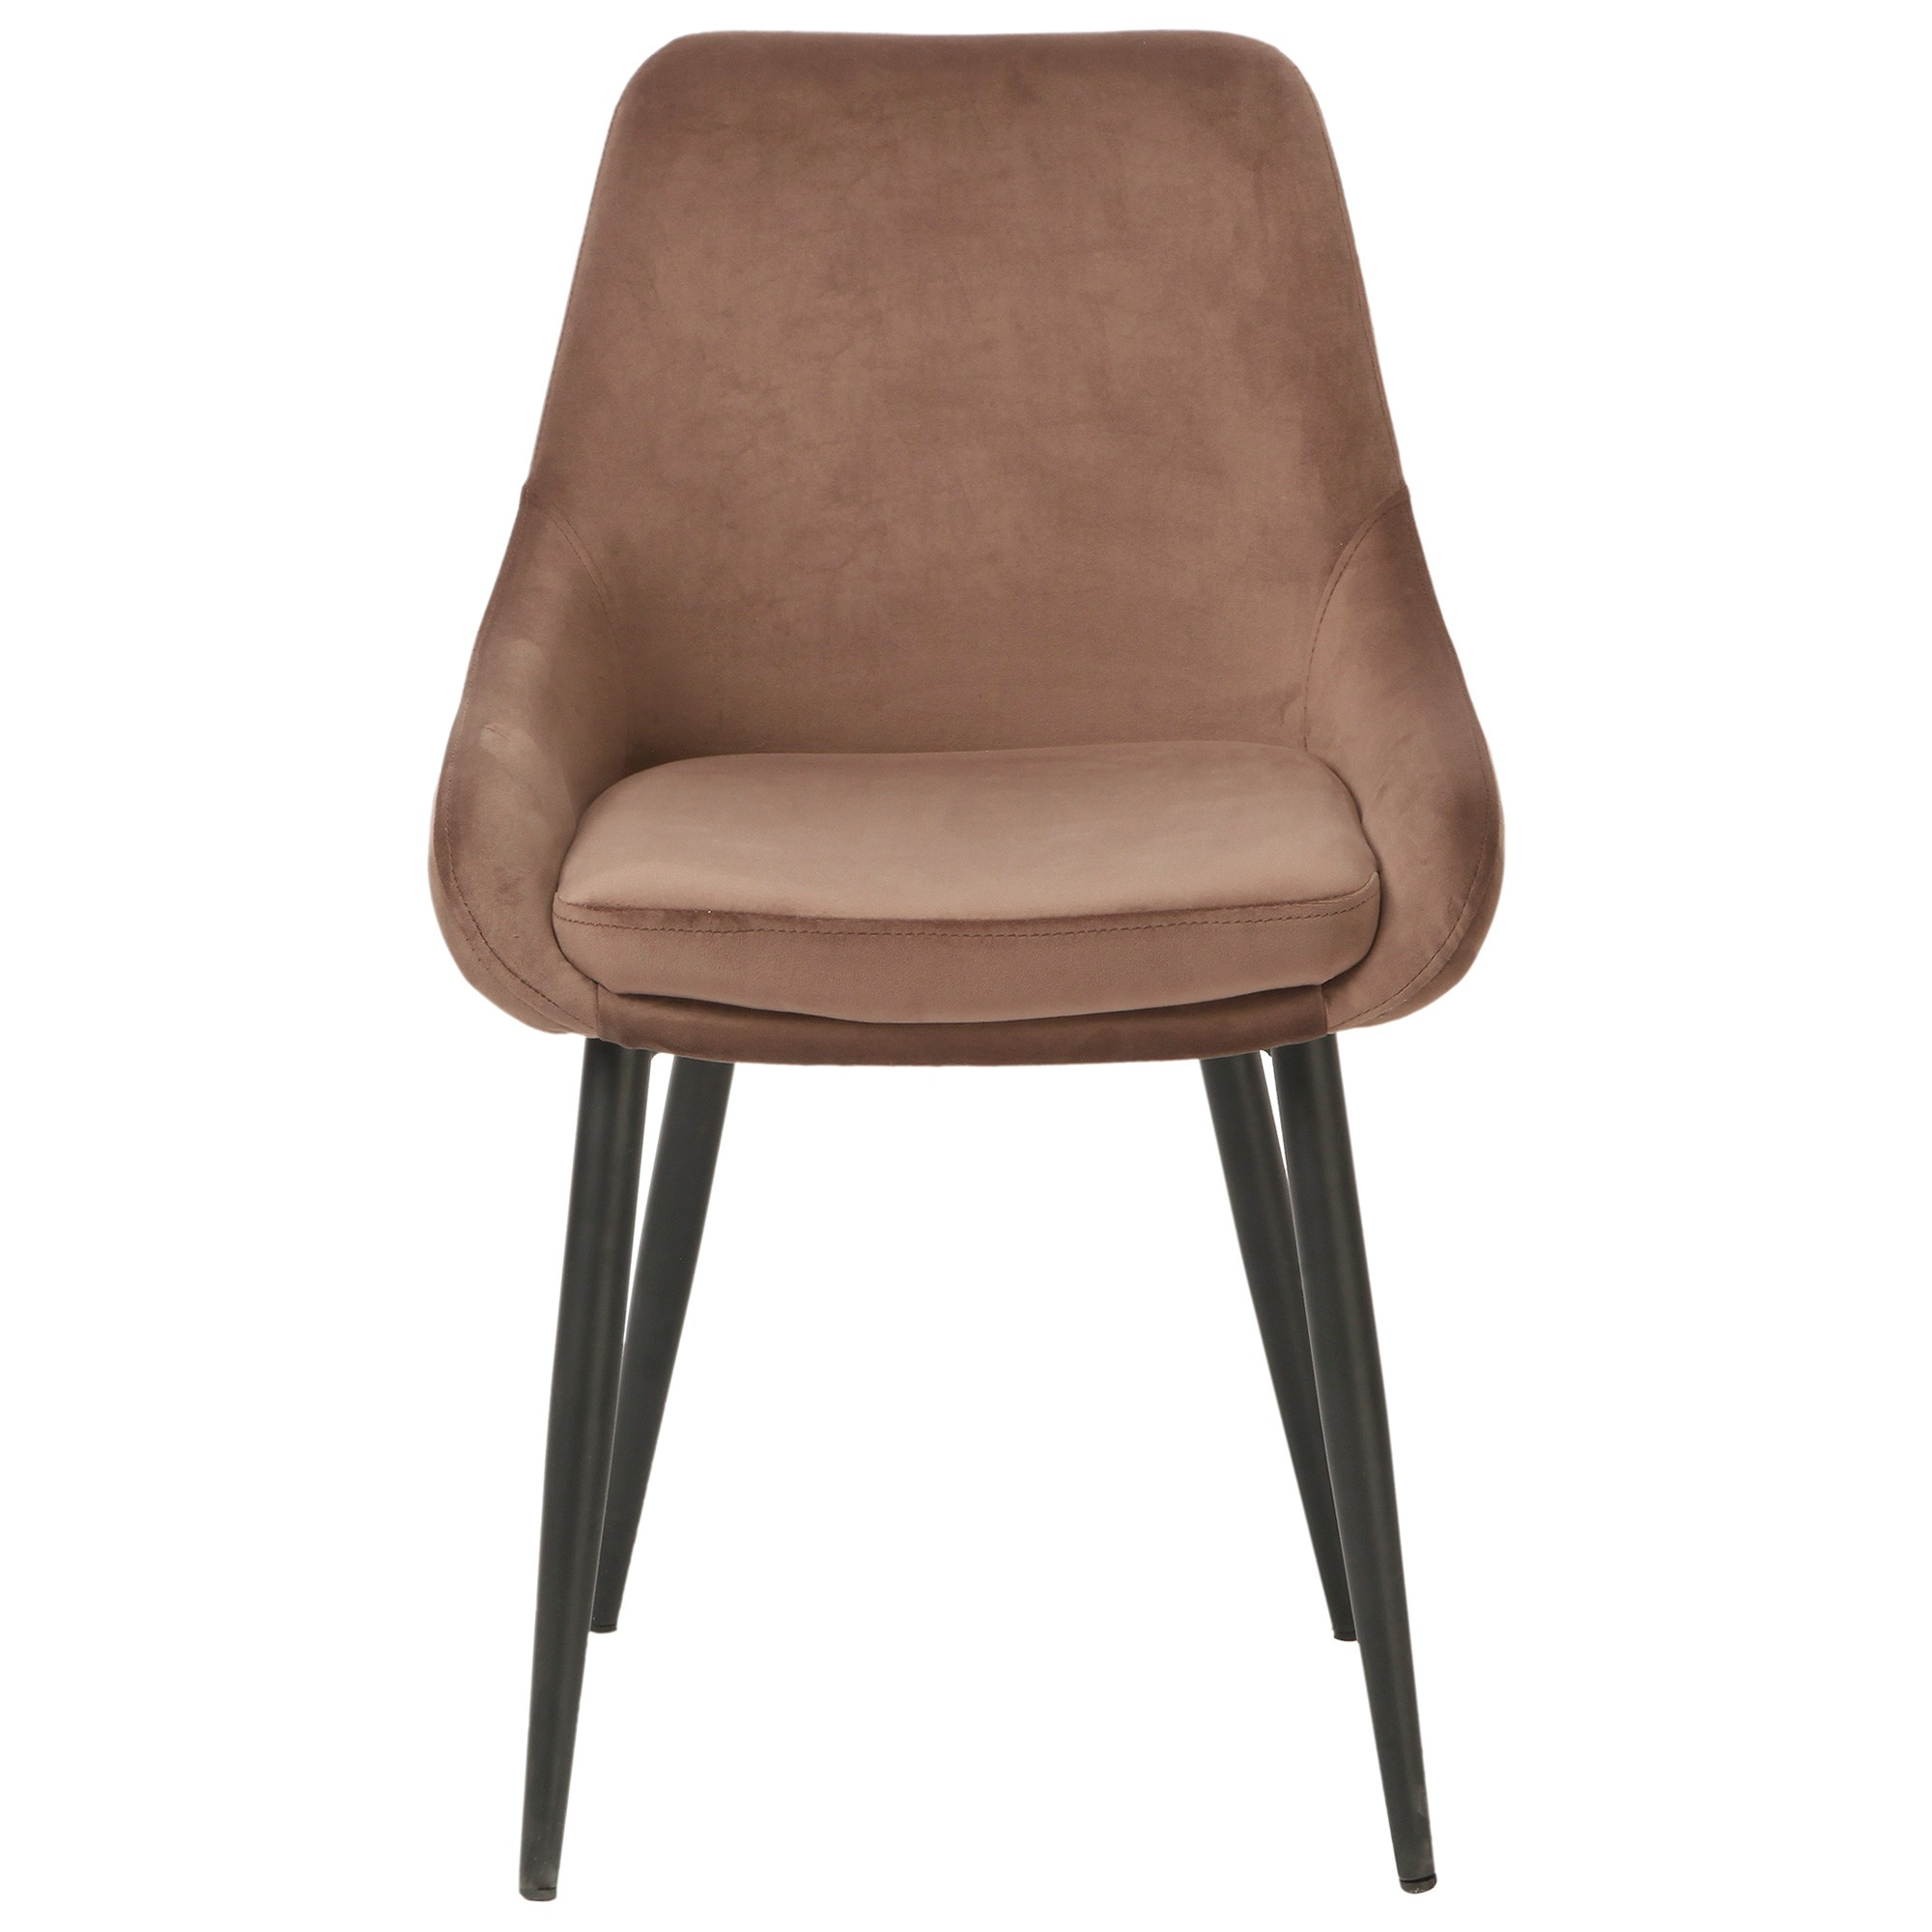 Frobisher Velvet Fabric Dining Chair, Mocha